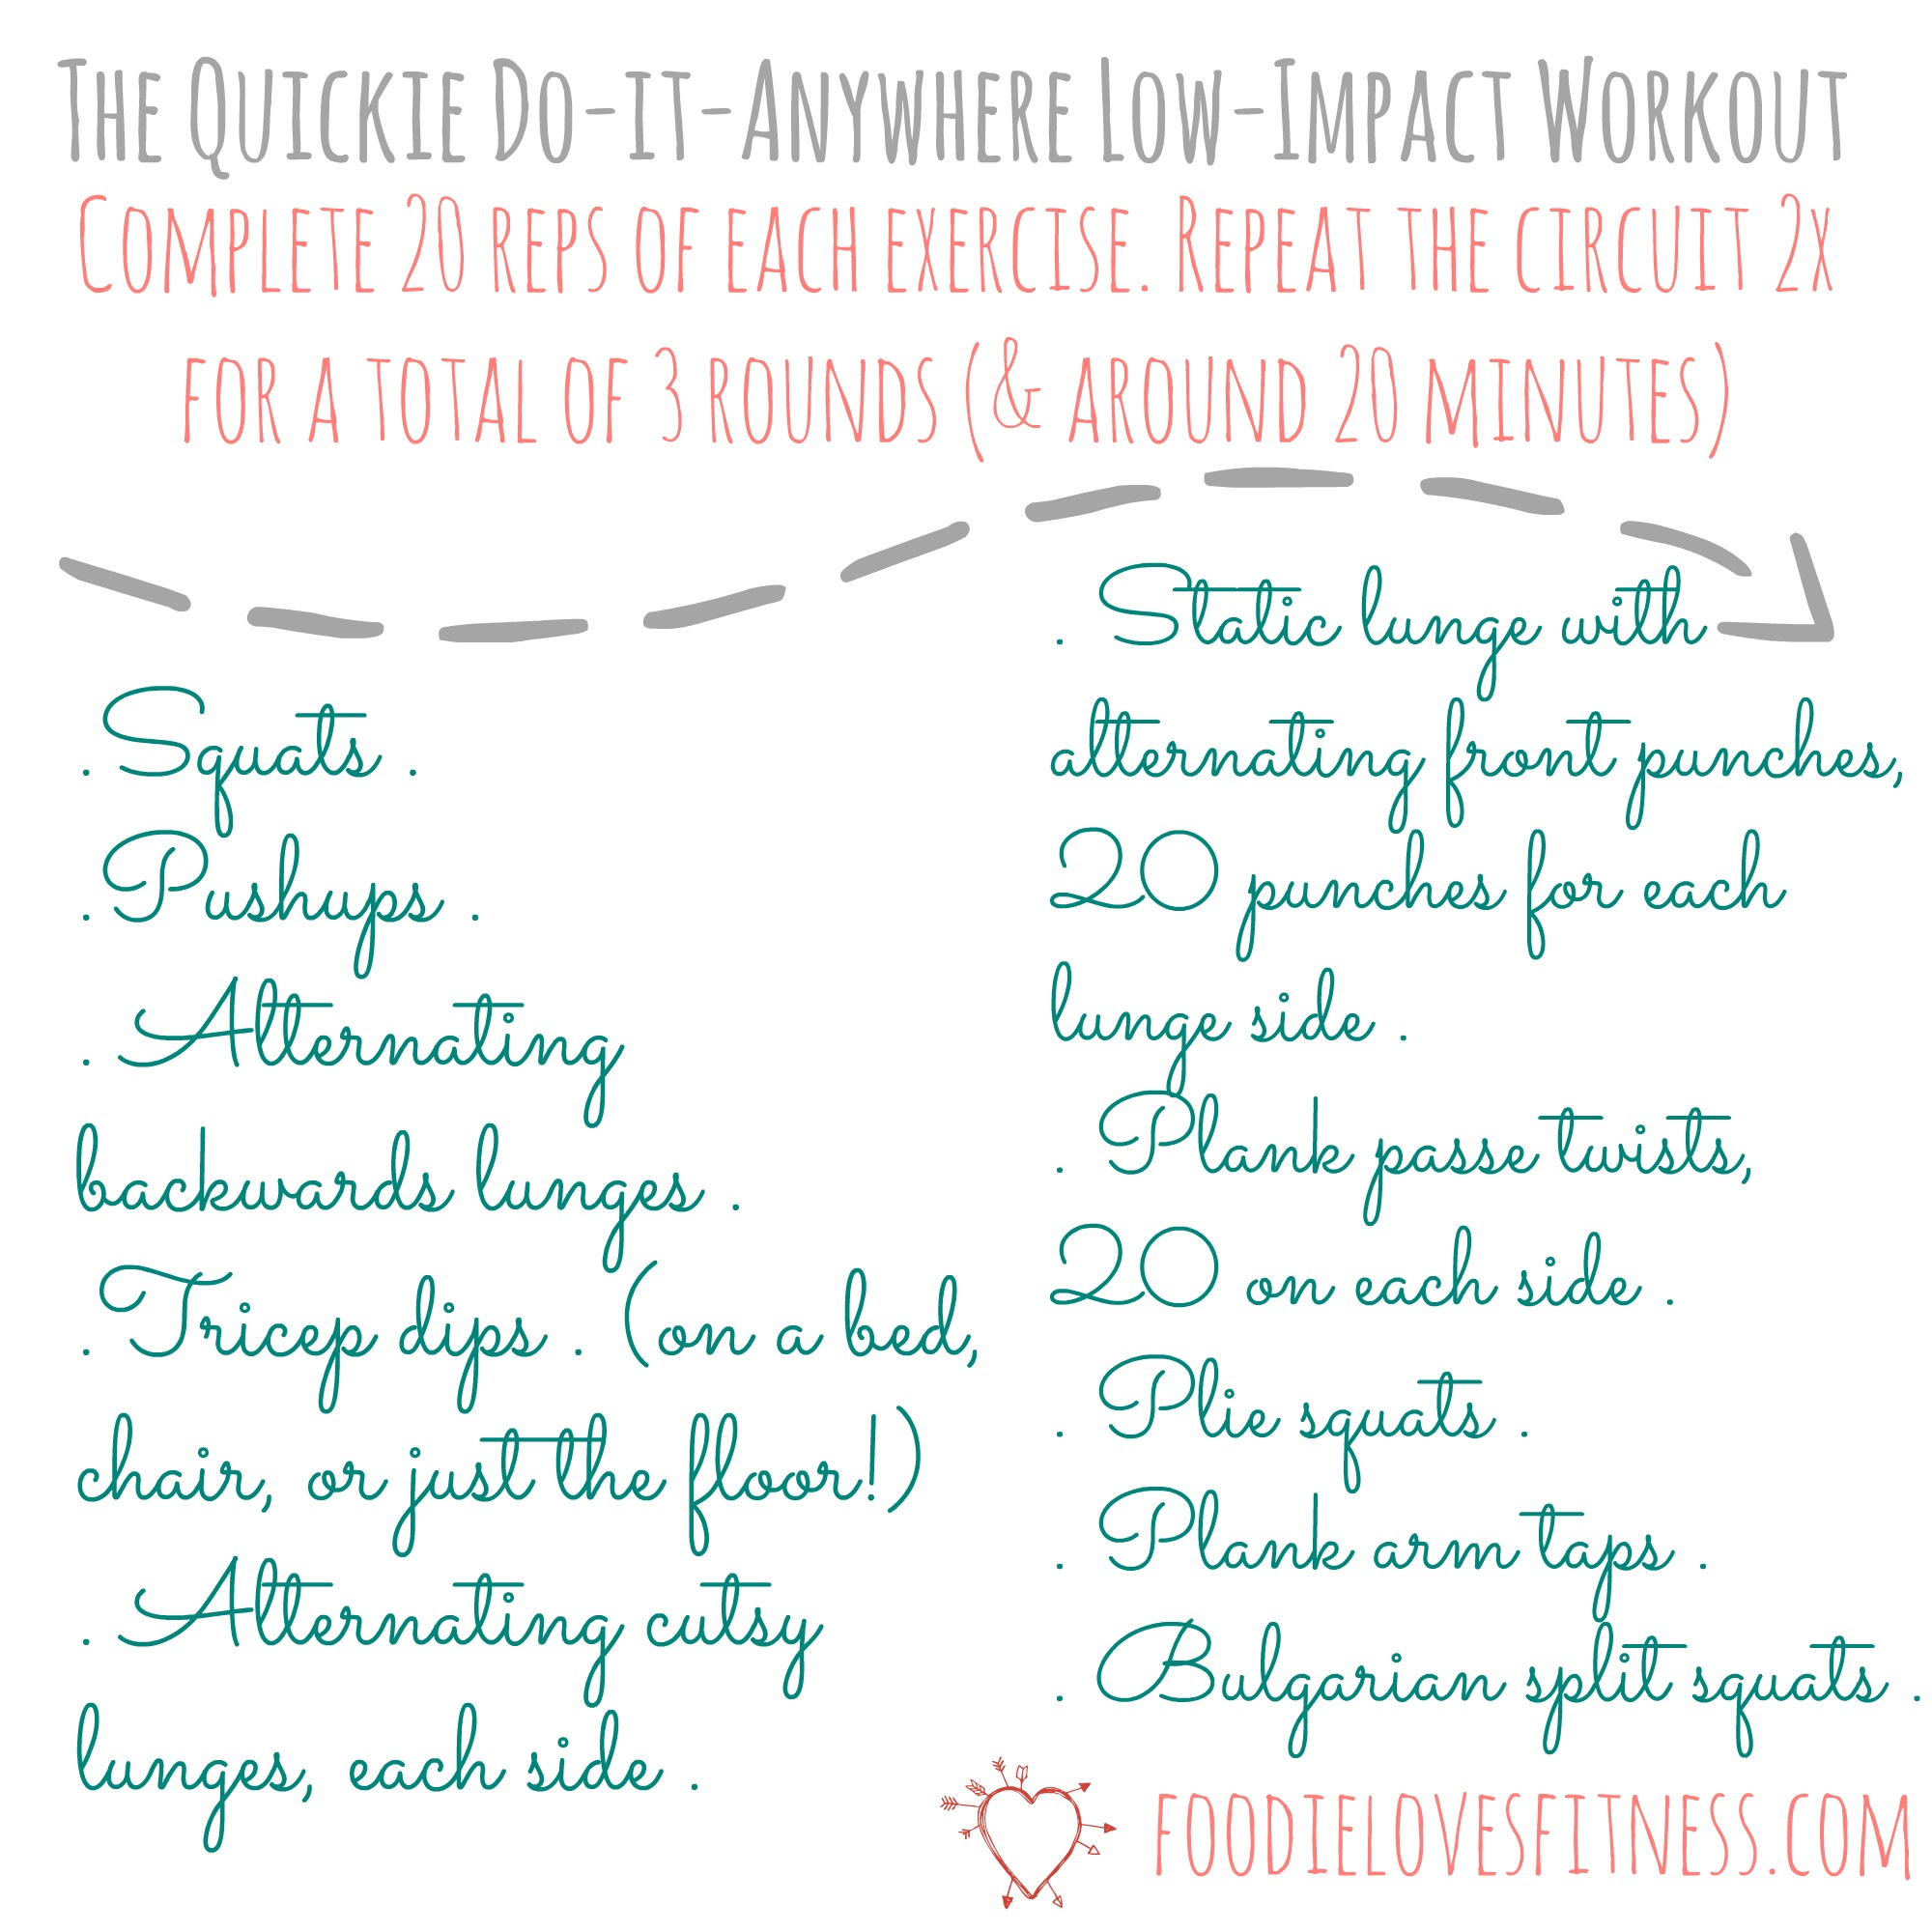 Quickie Low Impact Workout